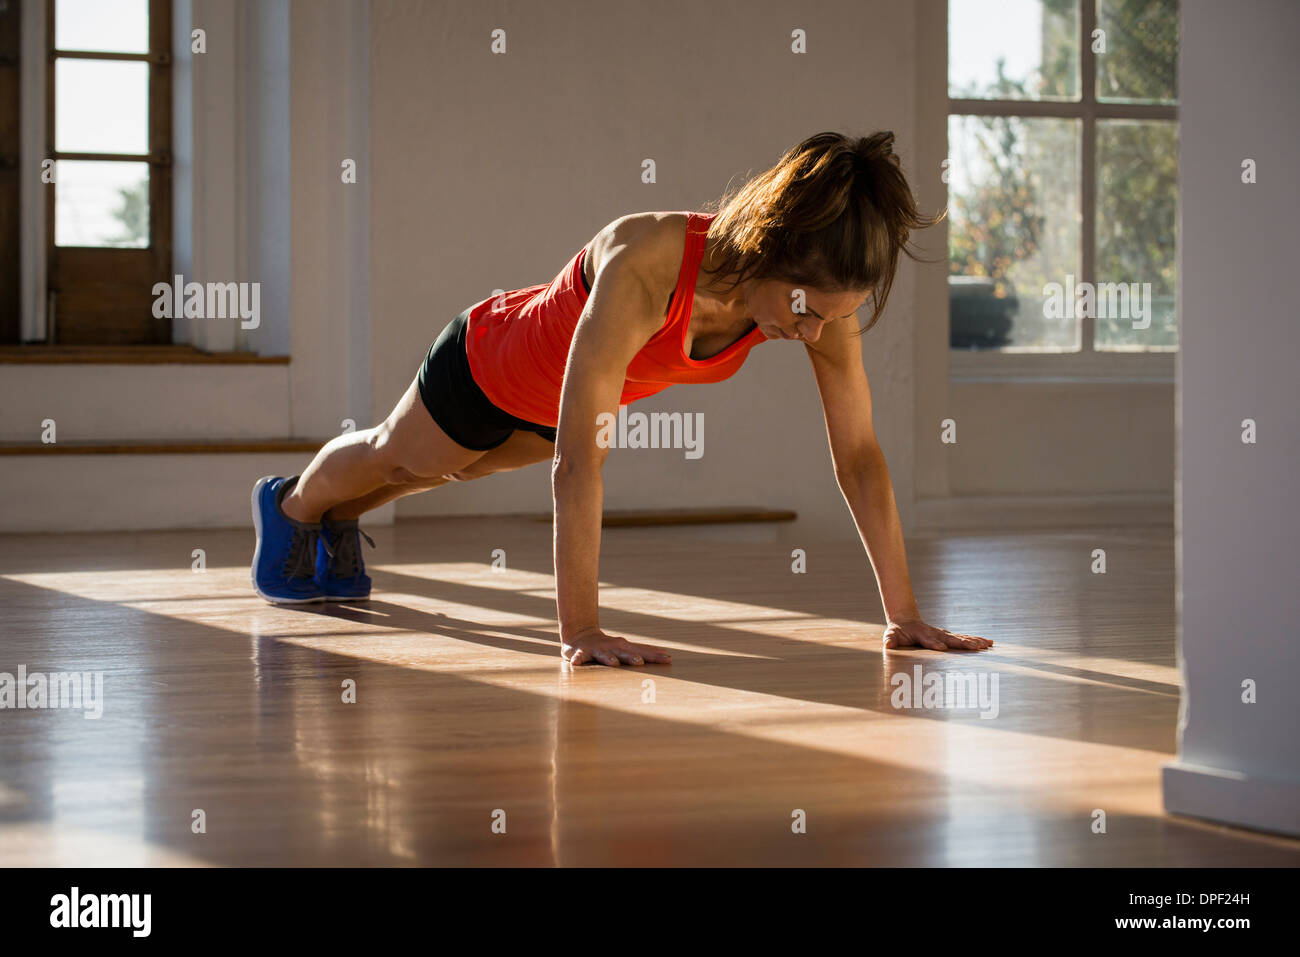 Woman in plank position - Stock Image